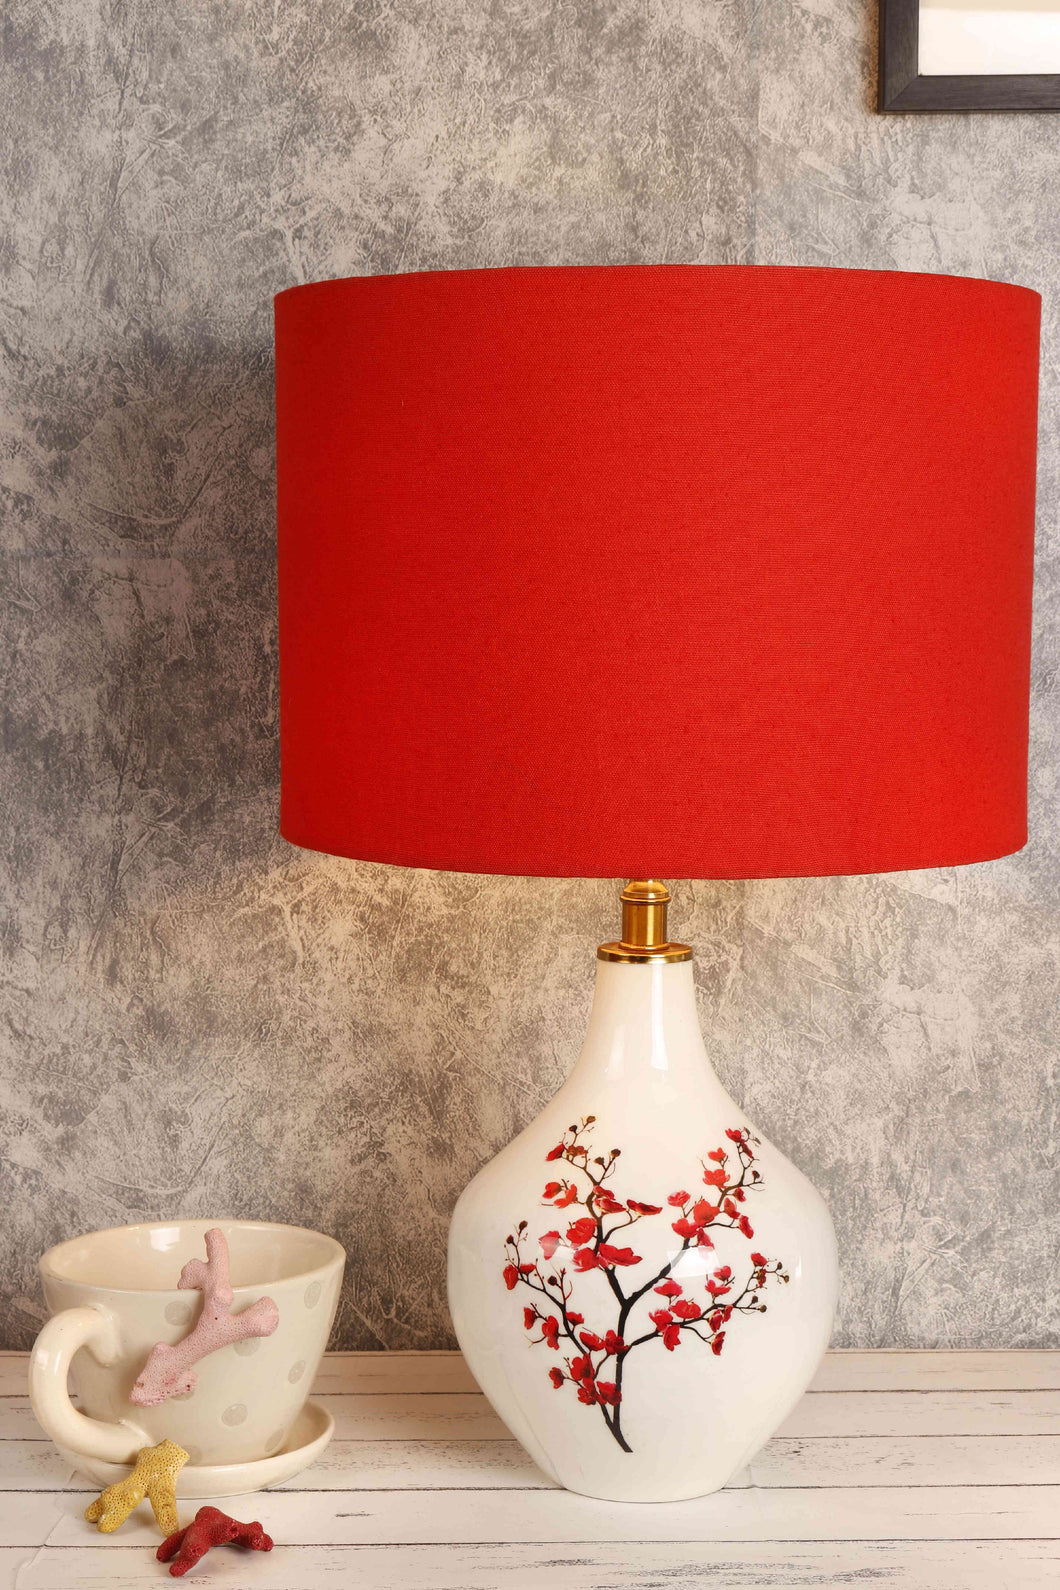 Cherry Blossom Table Lamp with Red Lampshade